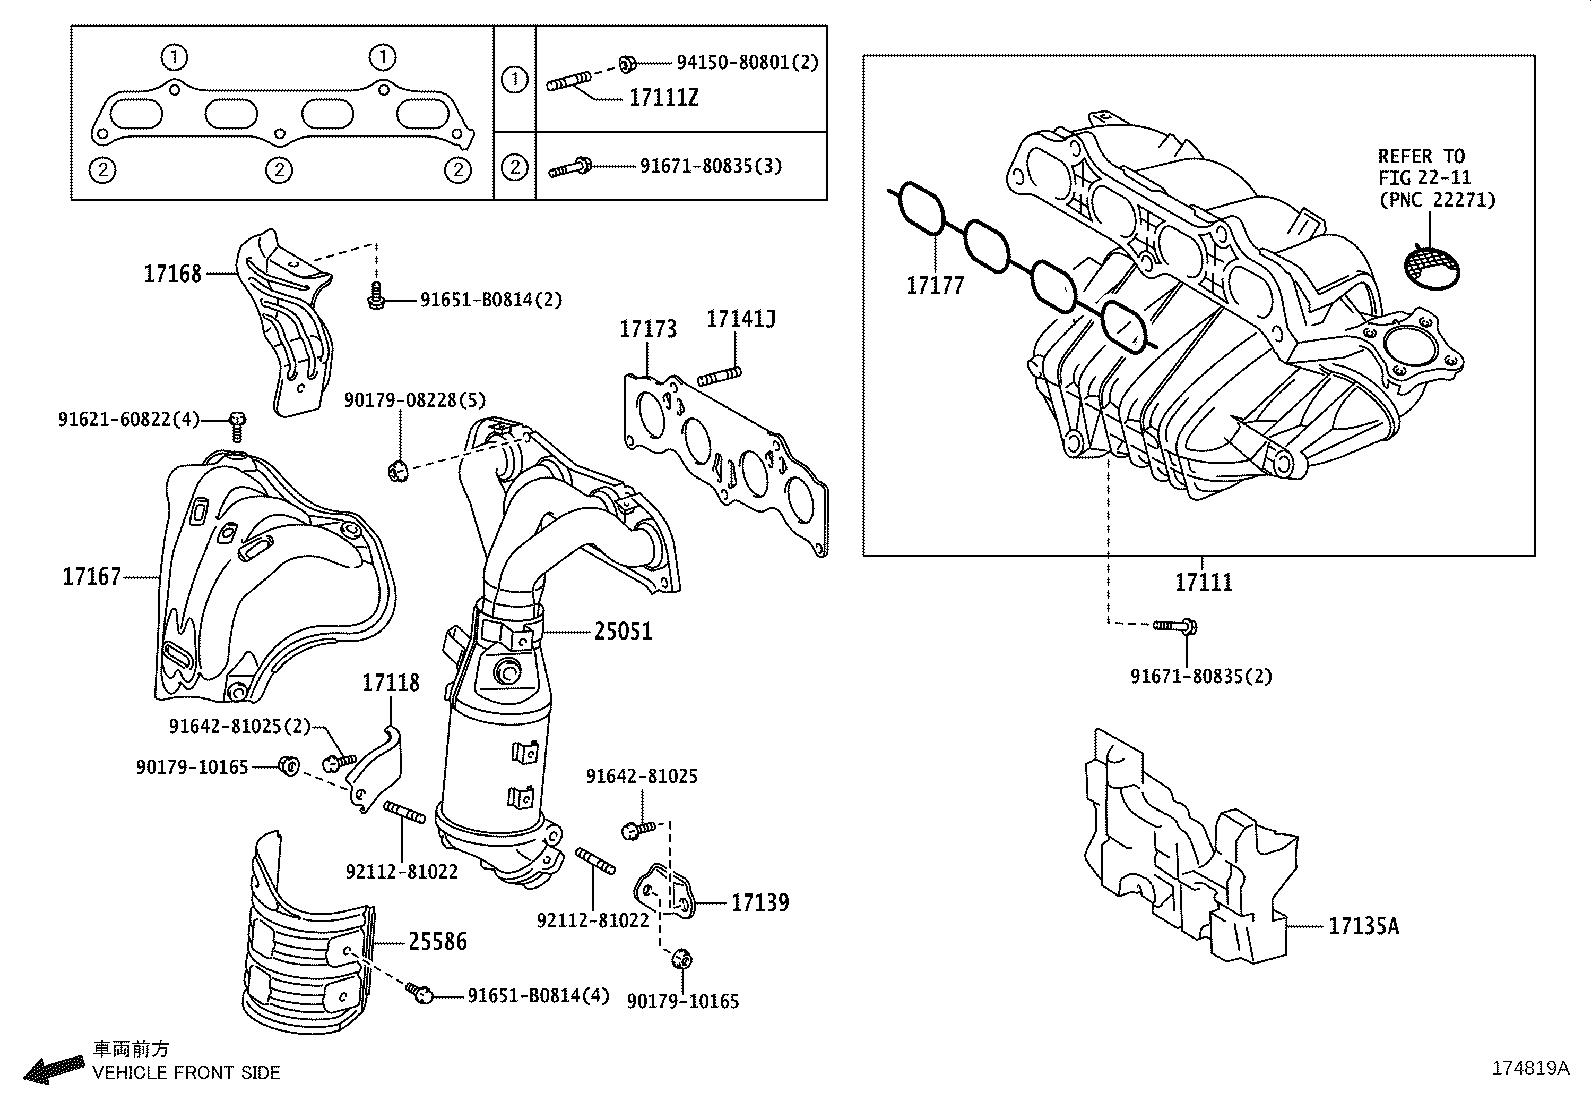 Wiring Diagram For A Scion Xb